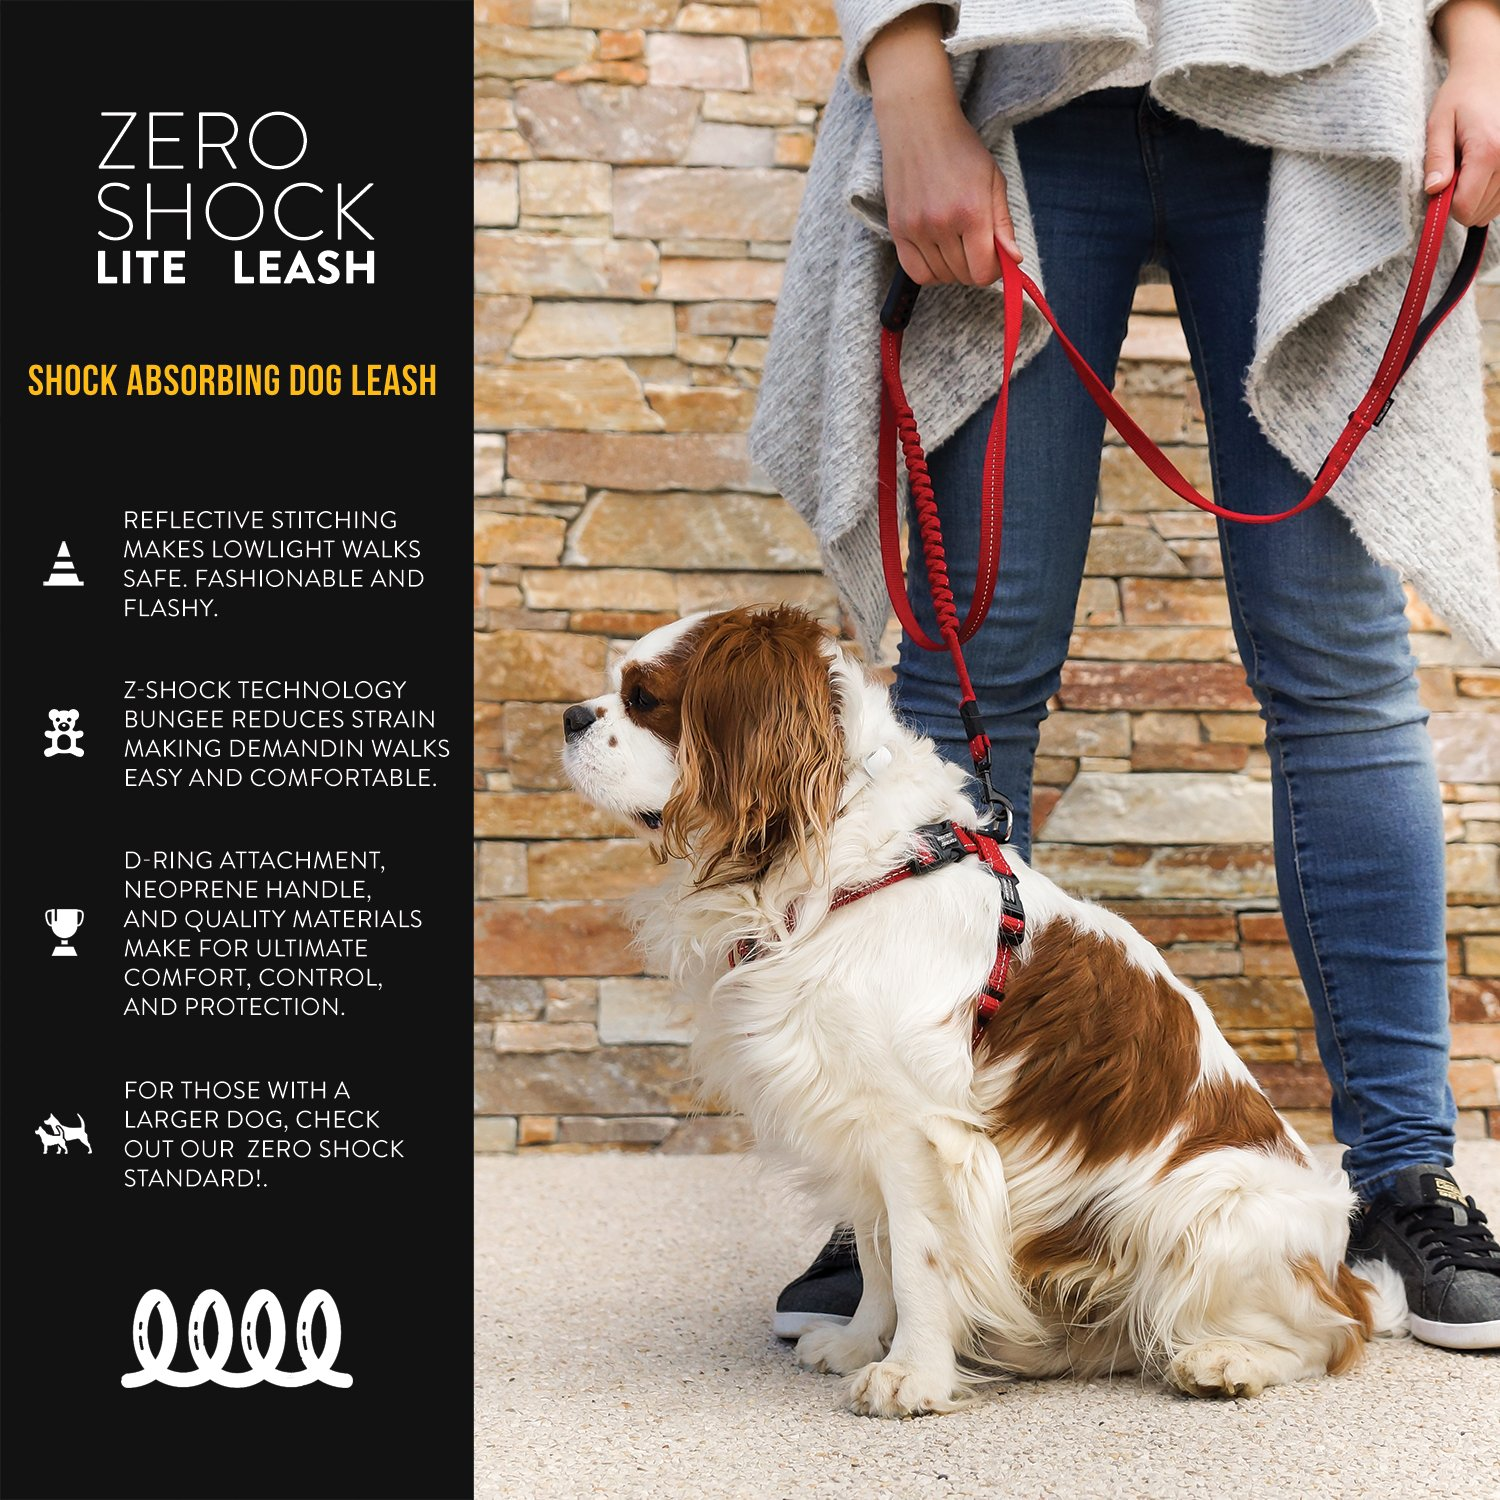 Amazoncom Ezydog Zero Shock Lite Bungee Dog Leash For Small Dogs